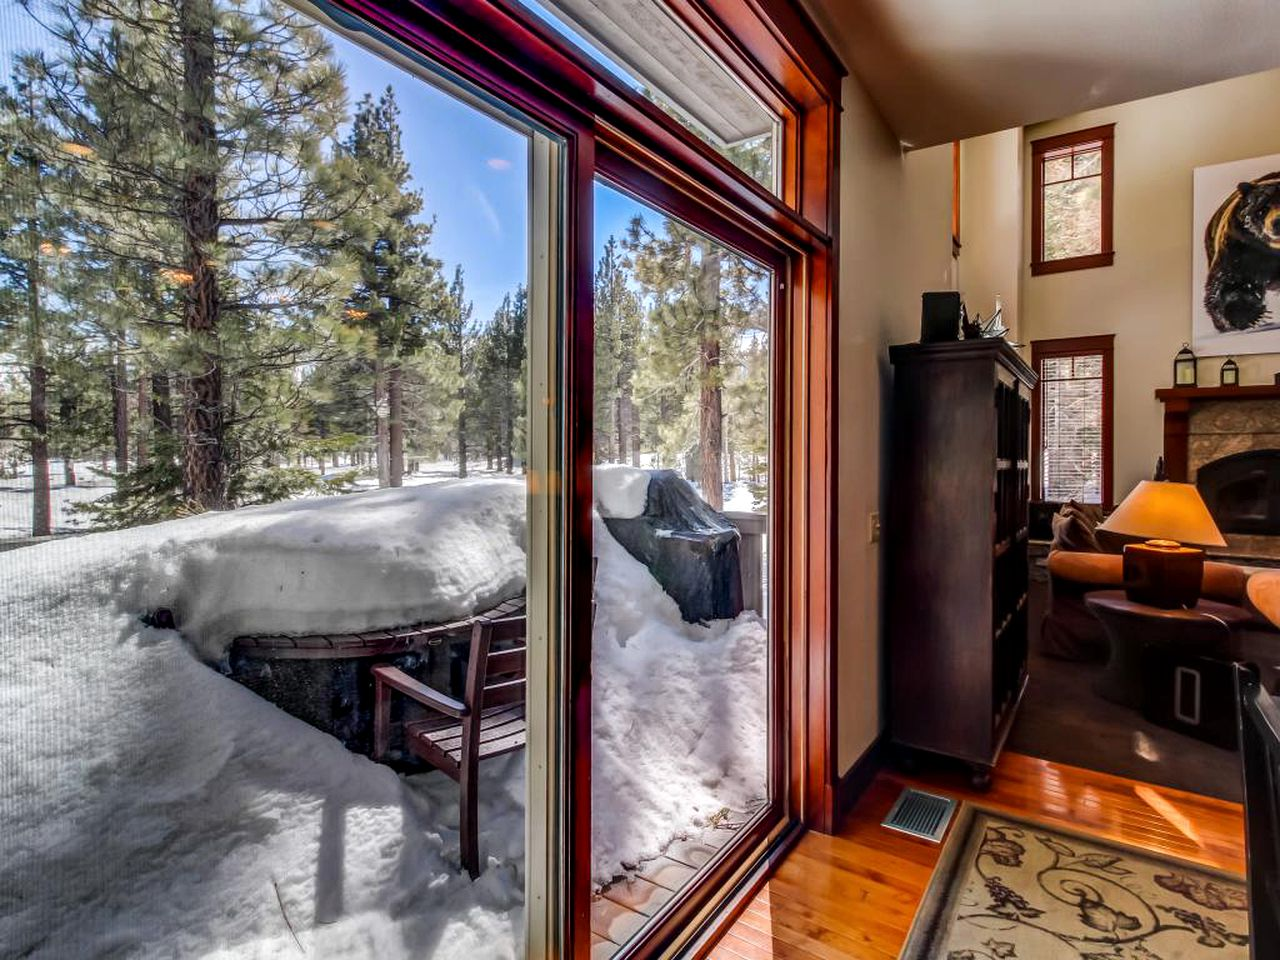 The cabin rental for winter getaways in Mammoth Lakes, California